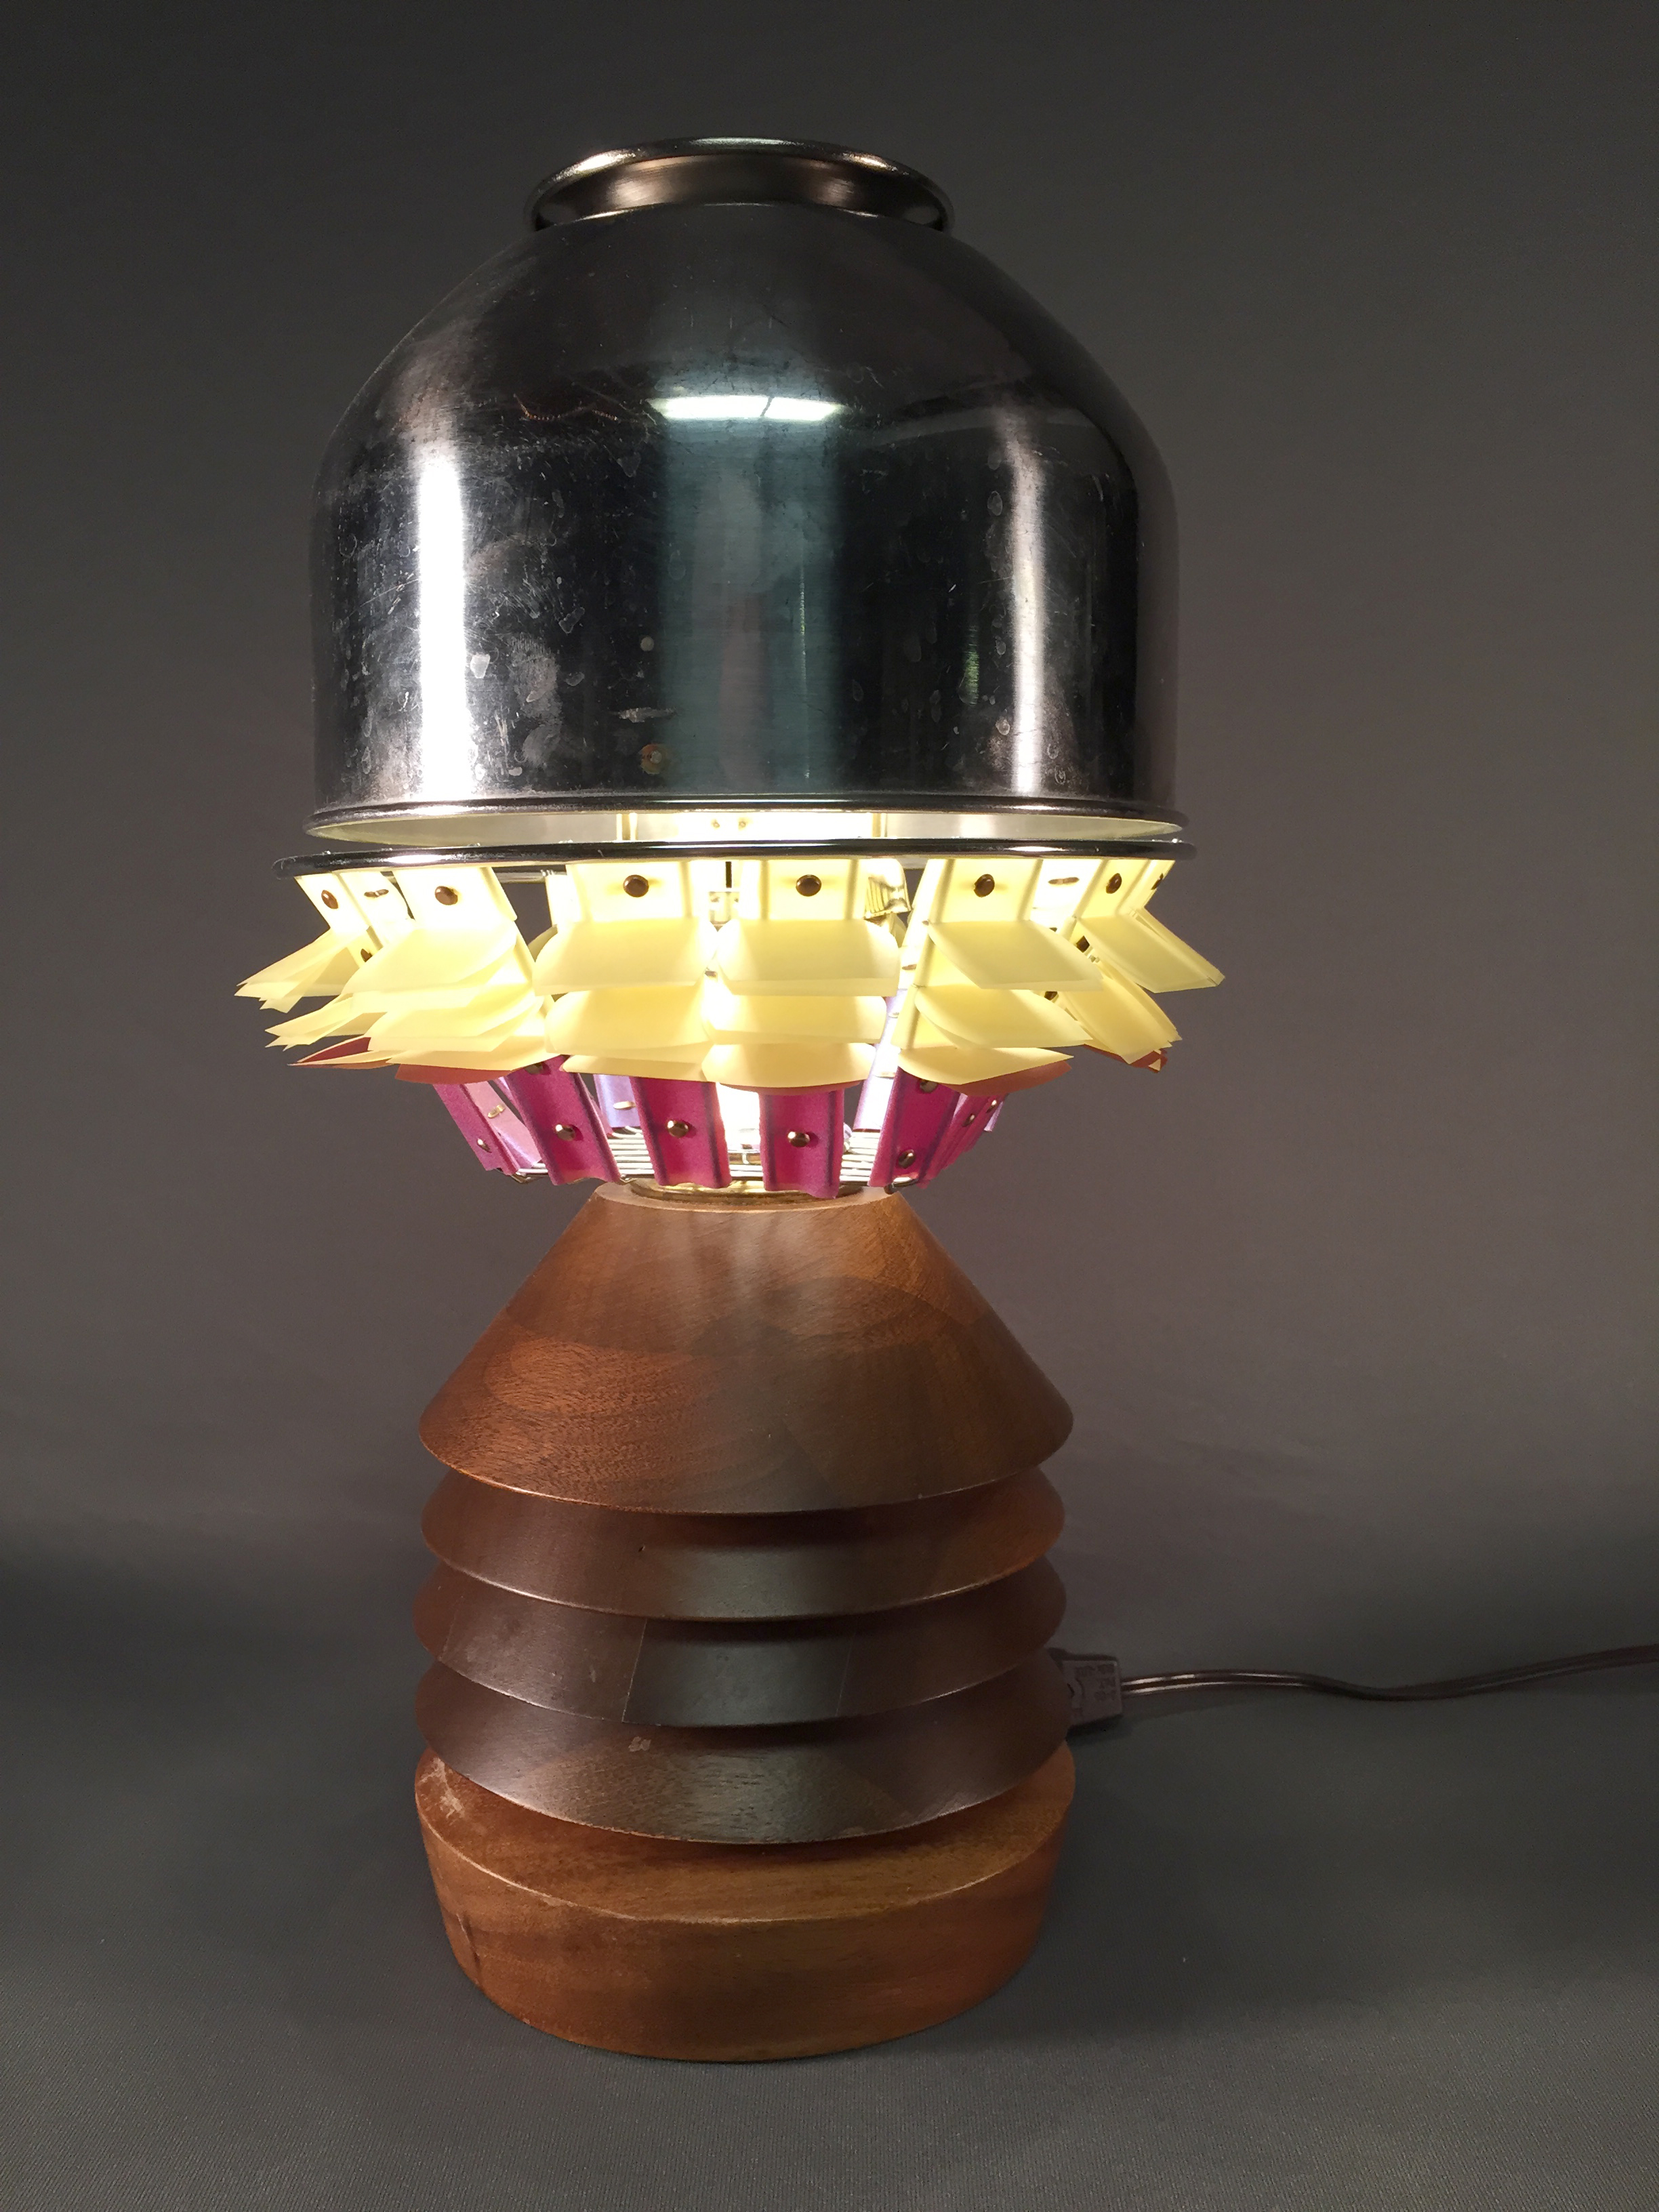 Power Cell Lamp